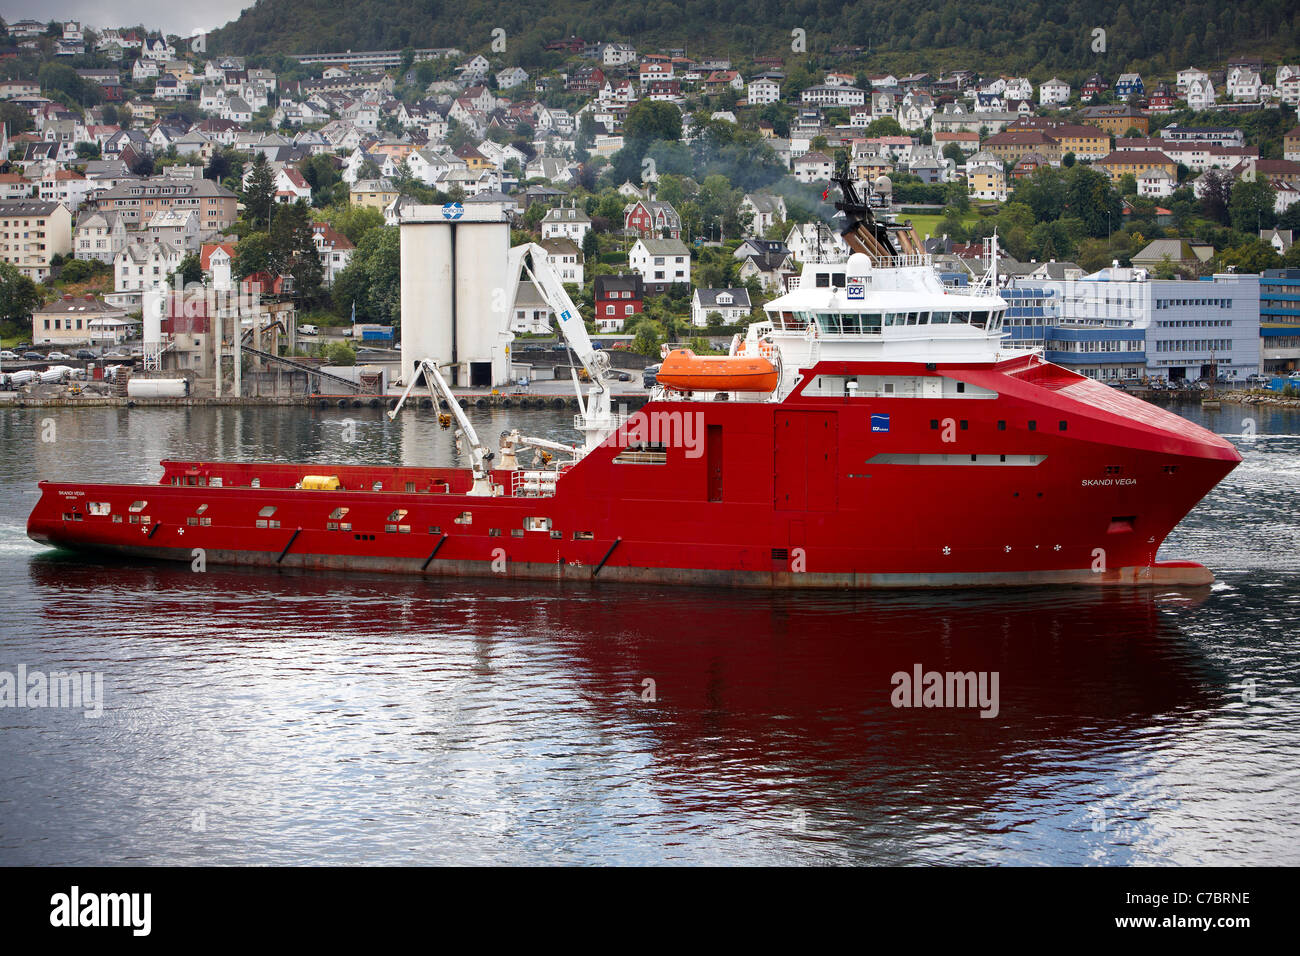 Anchor Handler and Construction Vessel, Skandi Vega, sails out of the Port of Bergen, Norway. - Stock Image